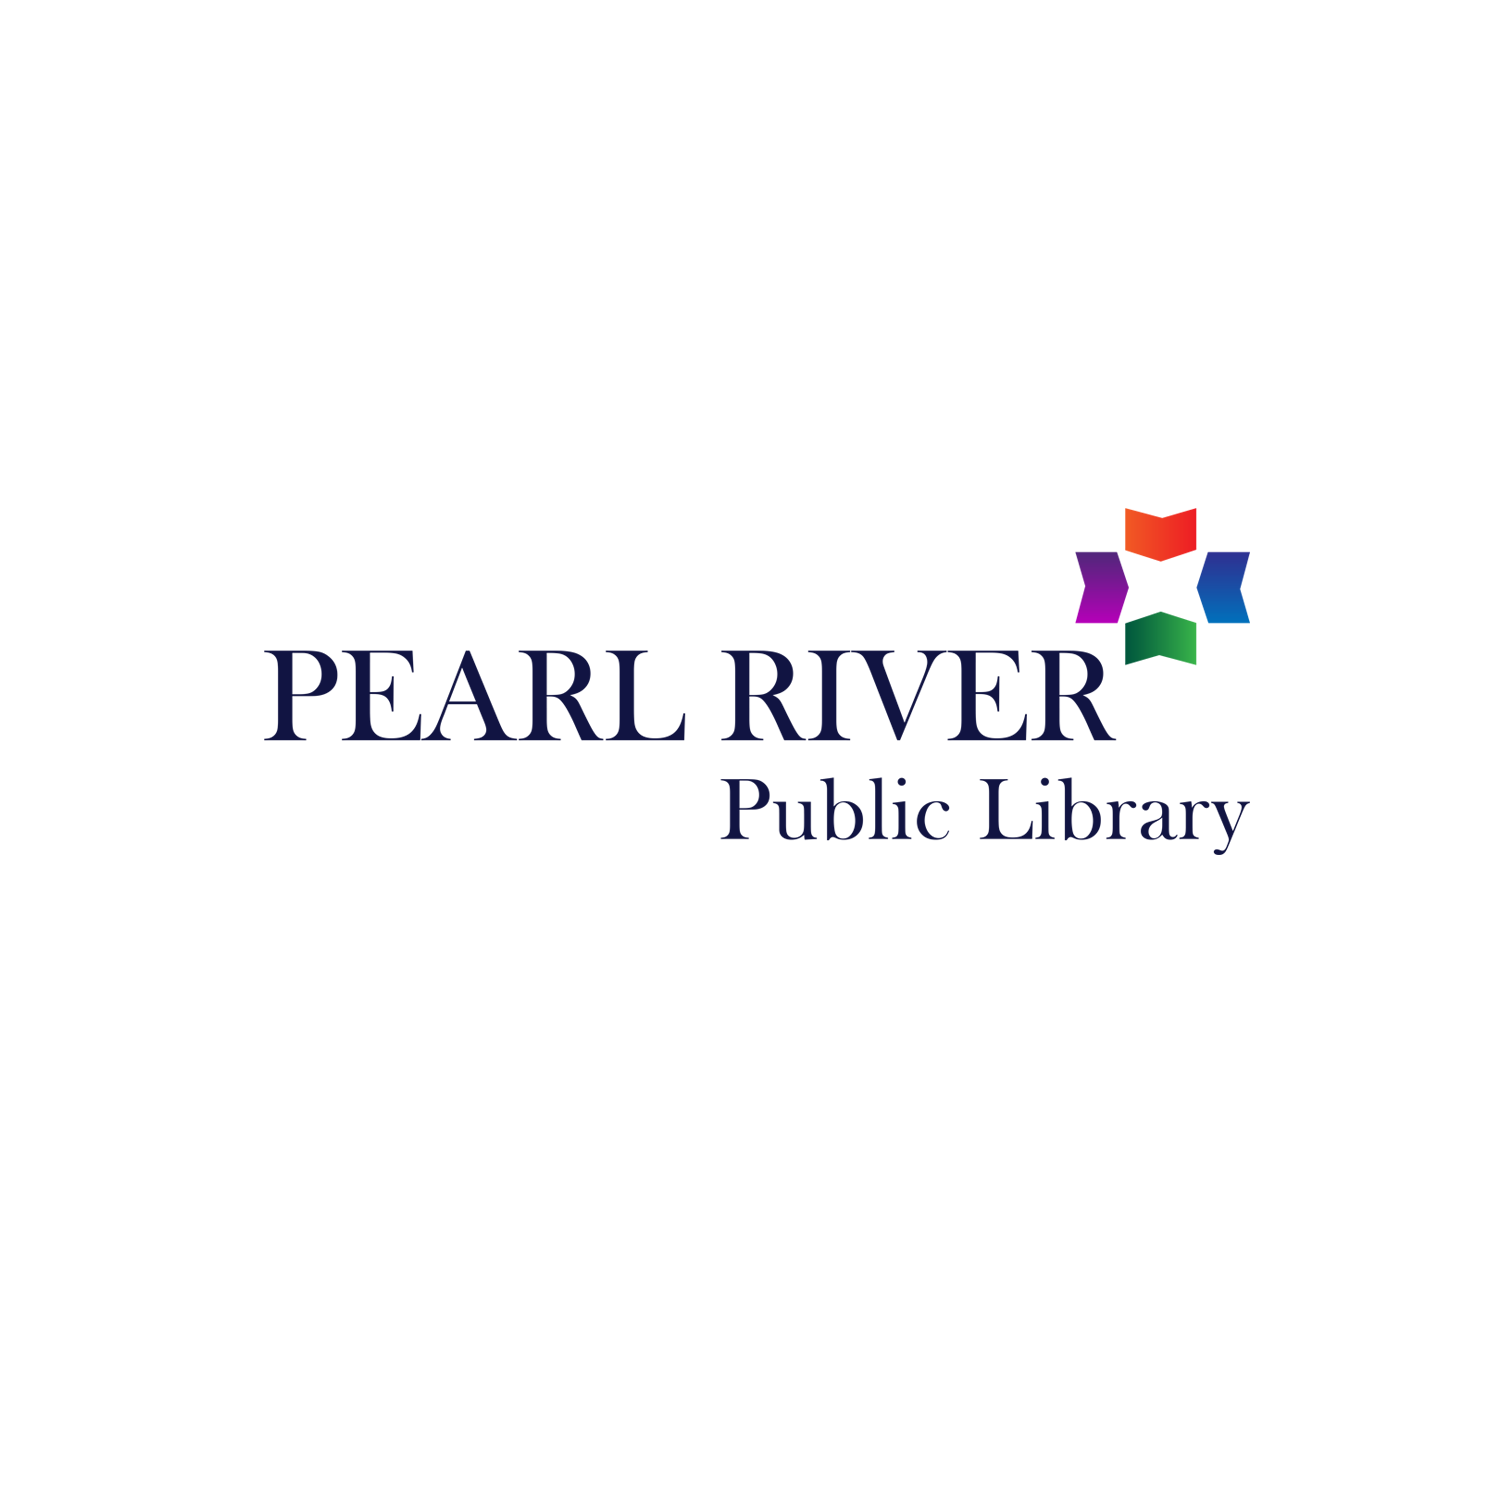 Logo Design for Pearl River Public Library by Kzodiack  Design